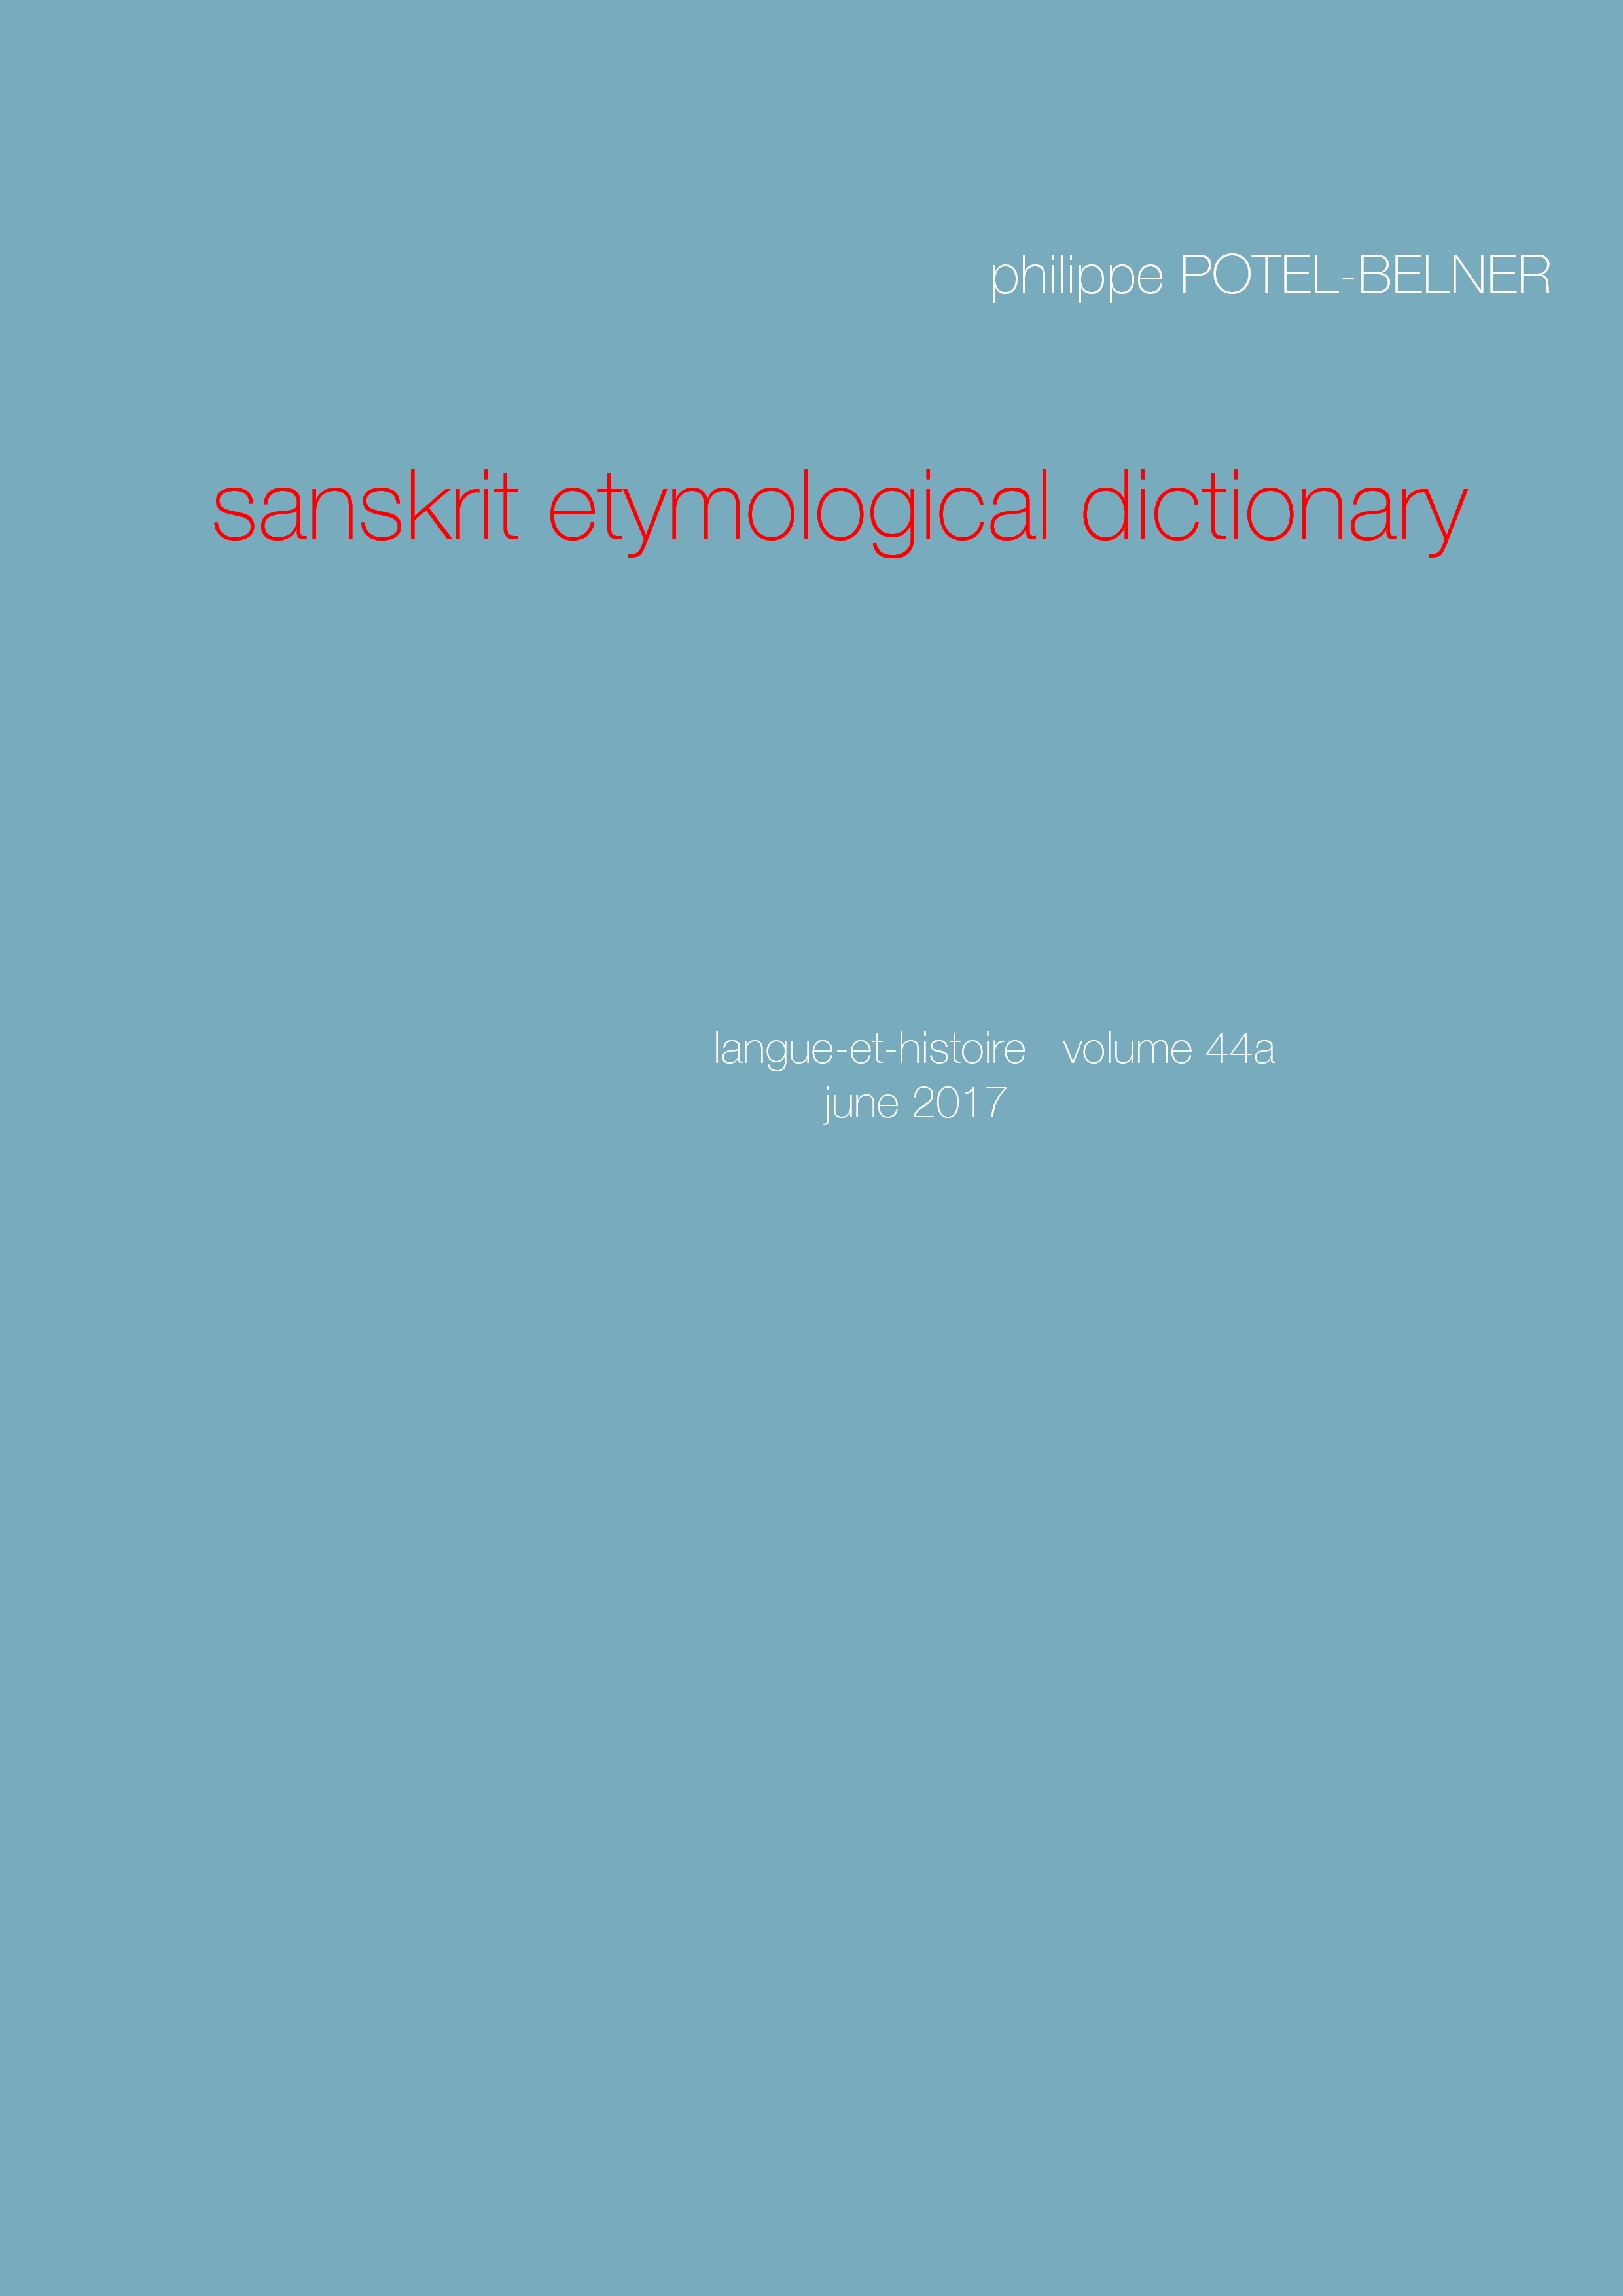 SANSKRIT ETYMOLOGICAL DICTIONARY